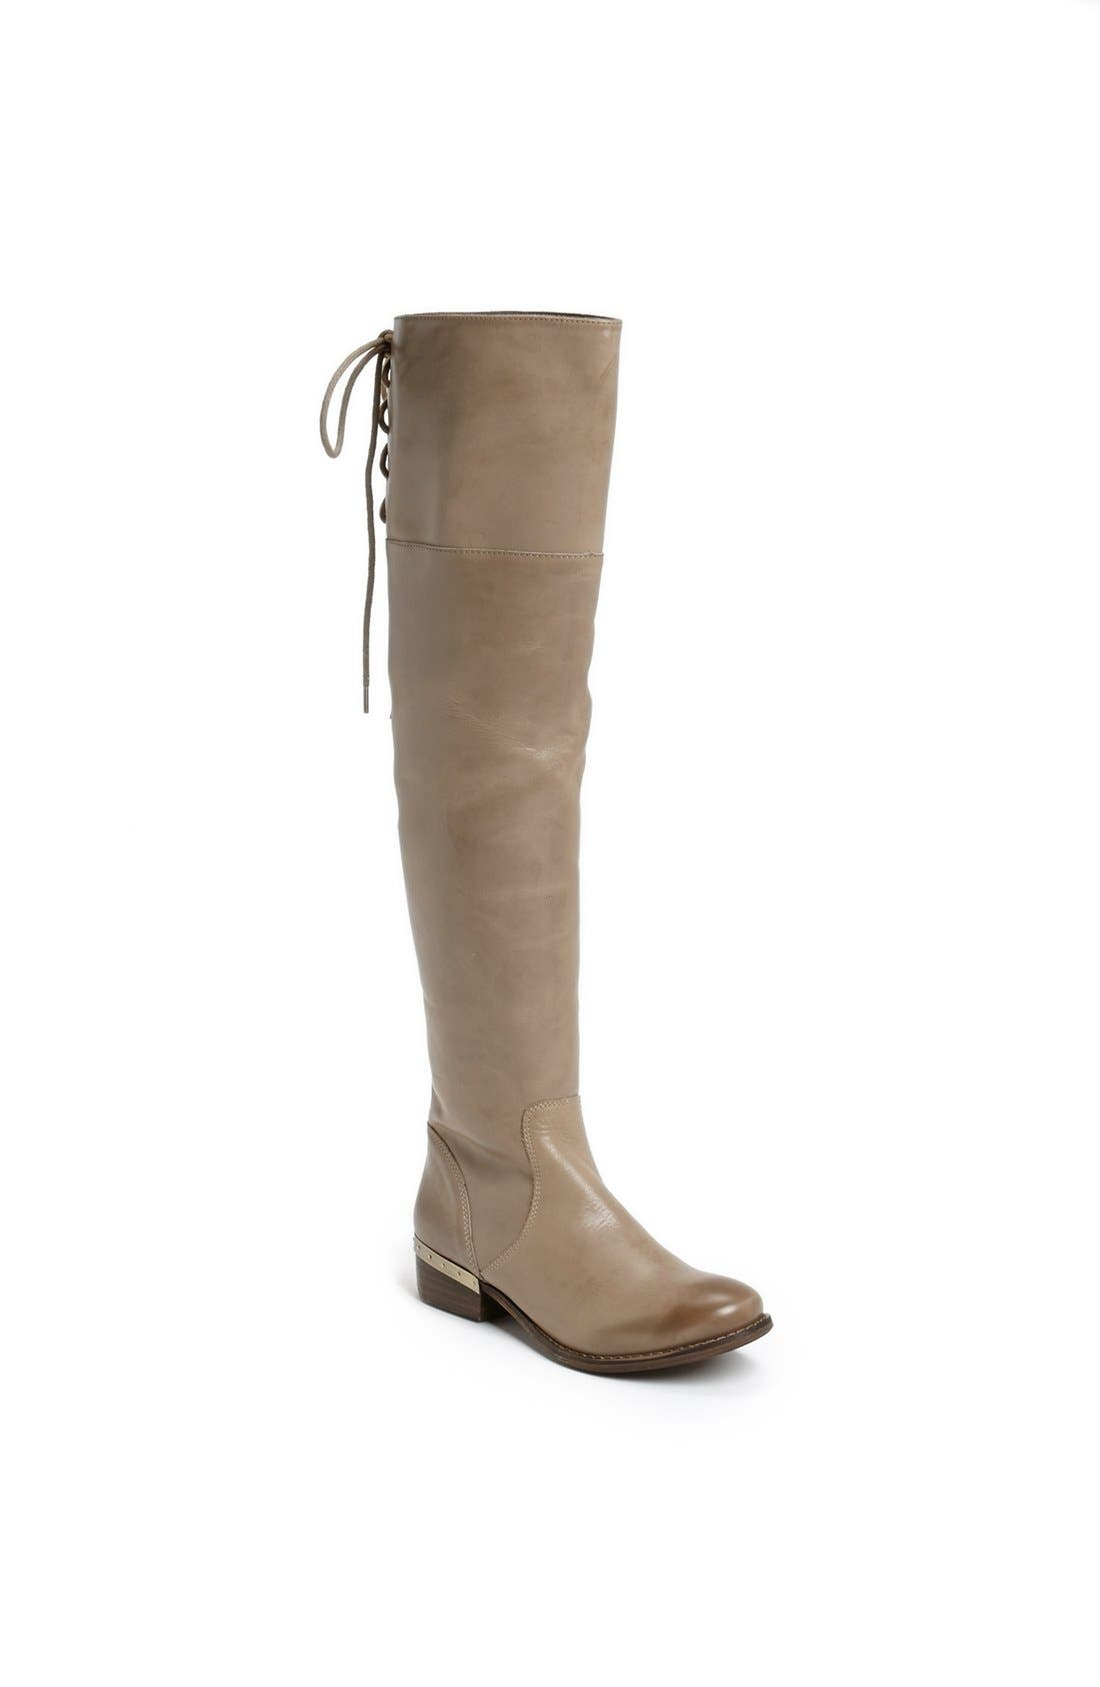 Alternate Image 1 Selected - MIA Limited Edition 'Lieutenant' Knee High Boot